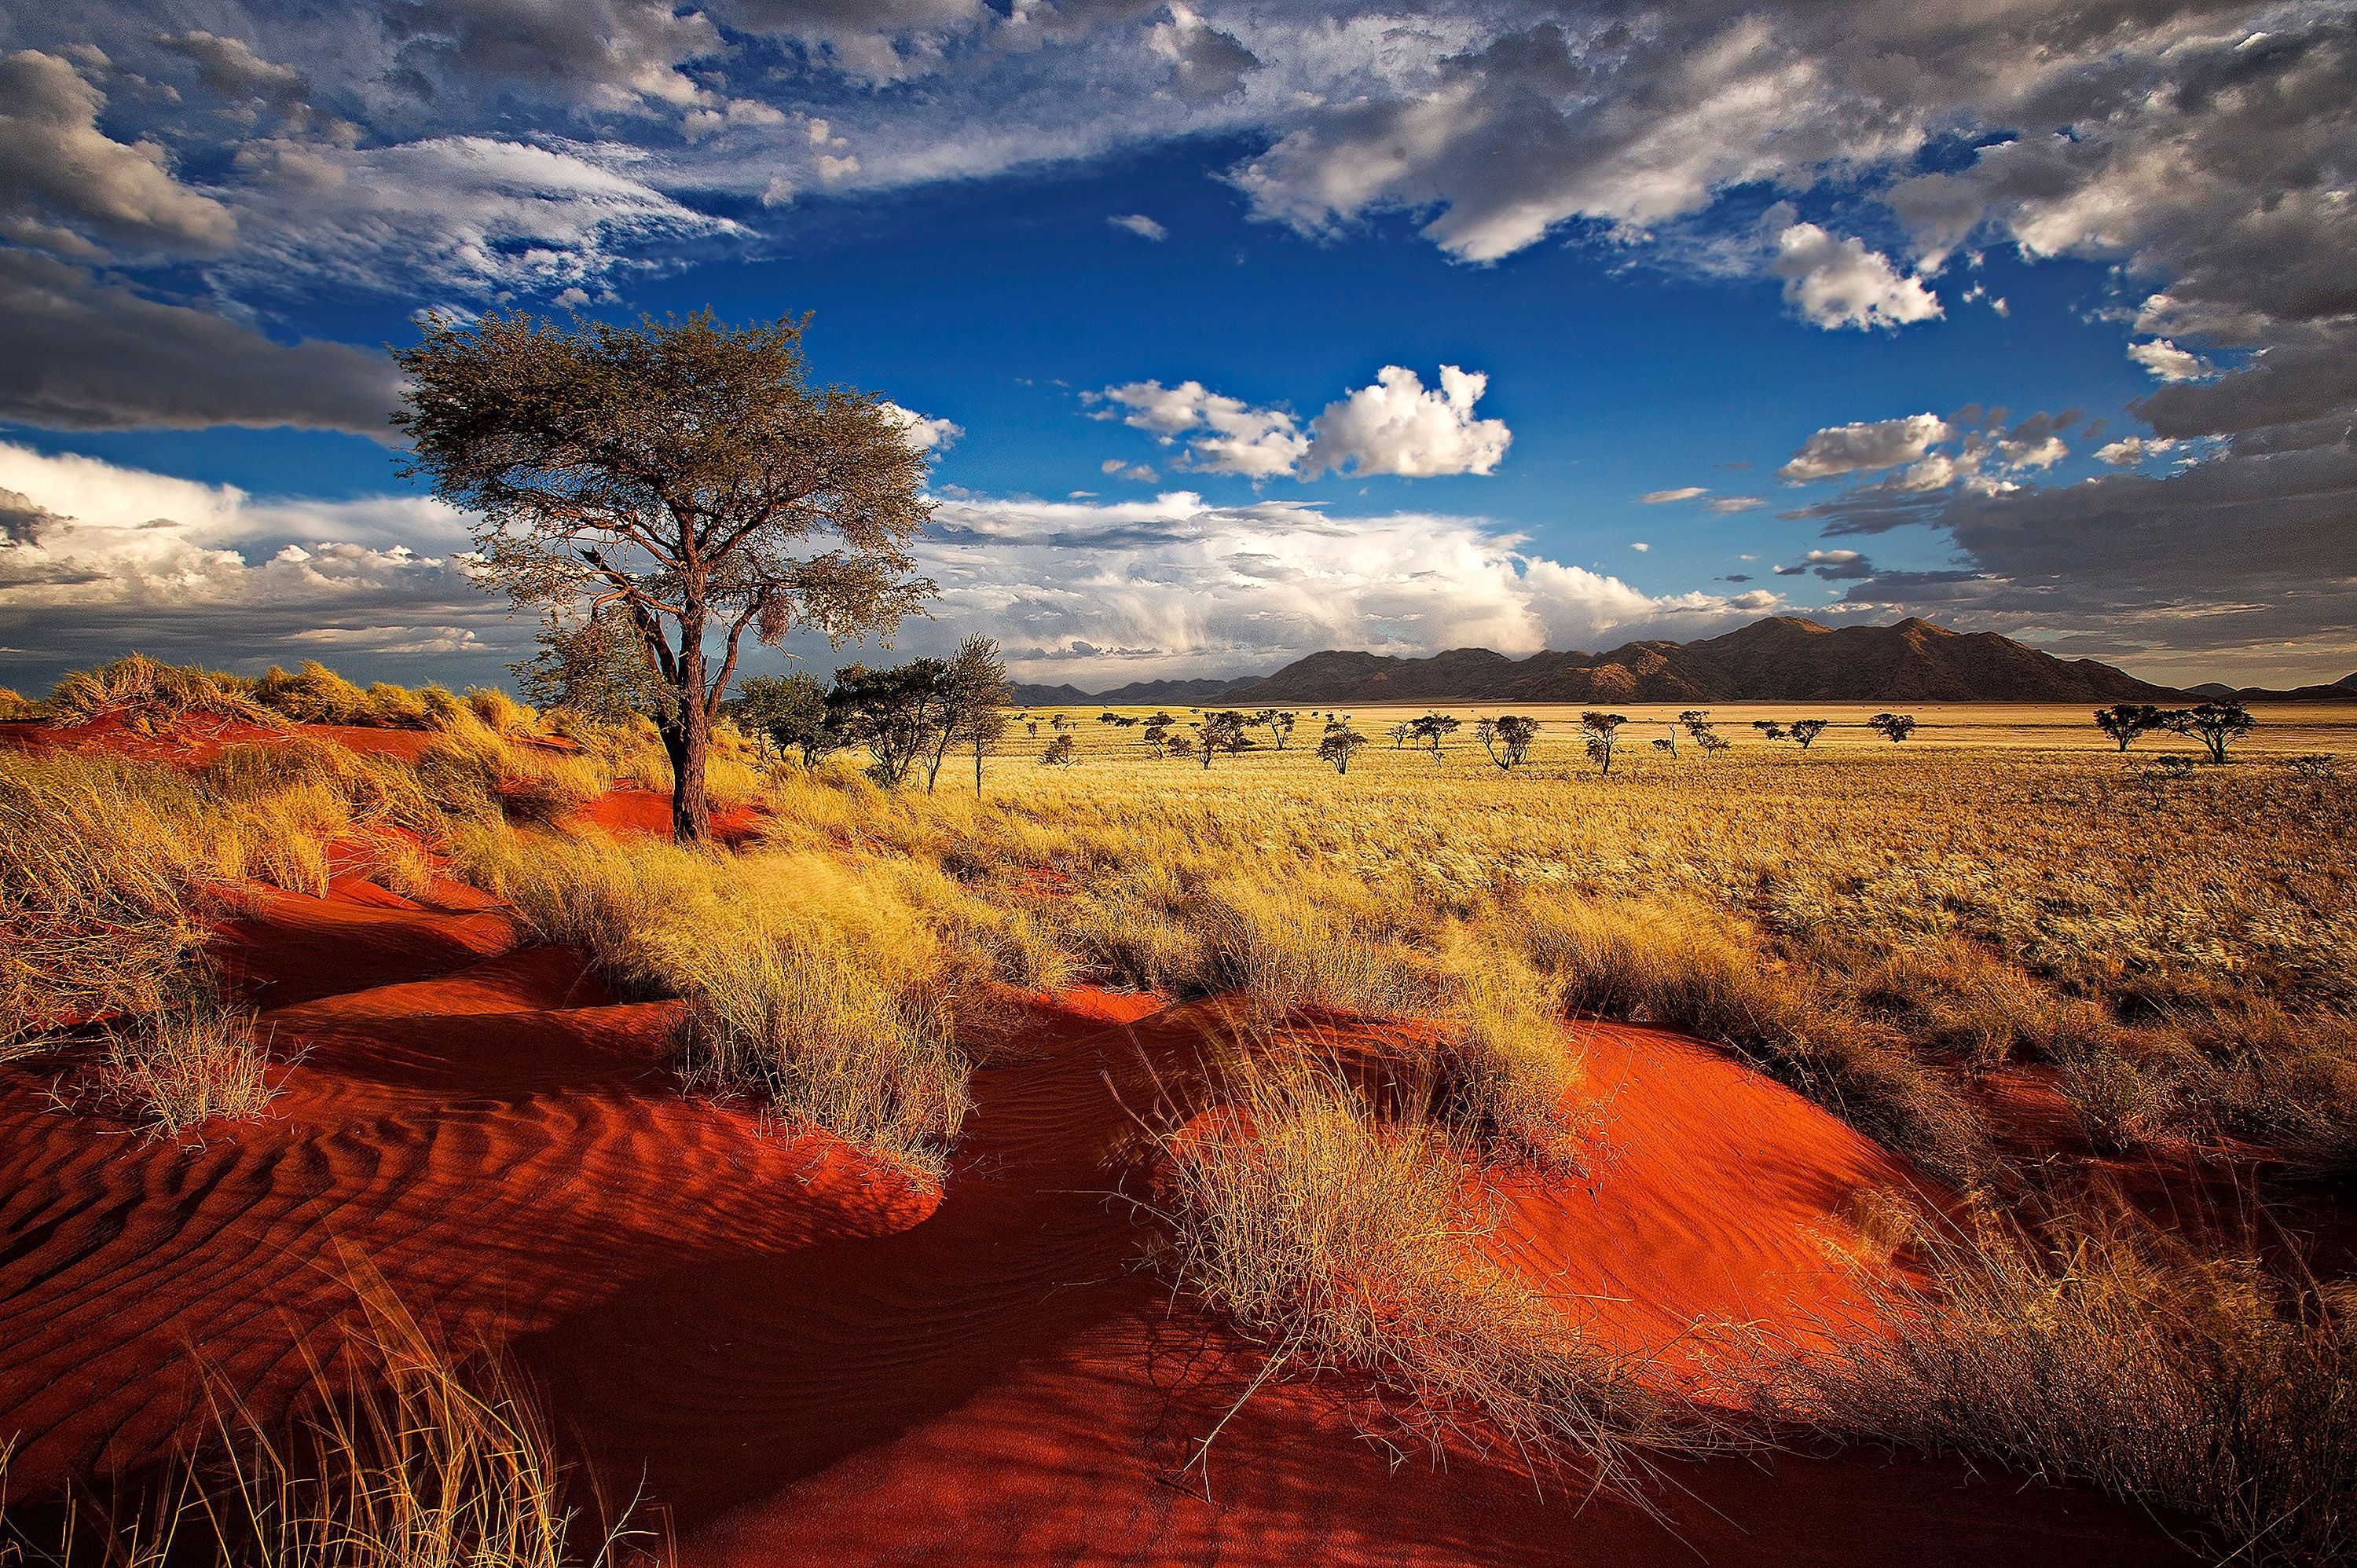 Wind Cathedral Namibia High Definition Wallpapers